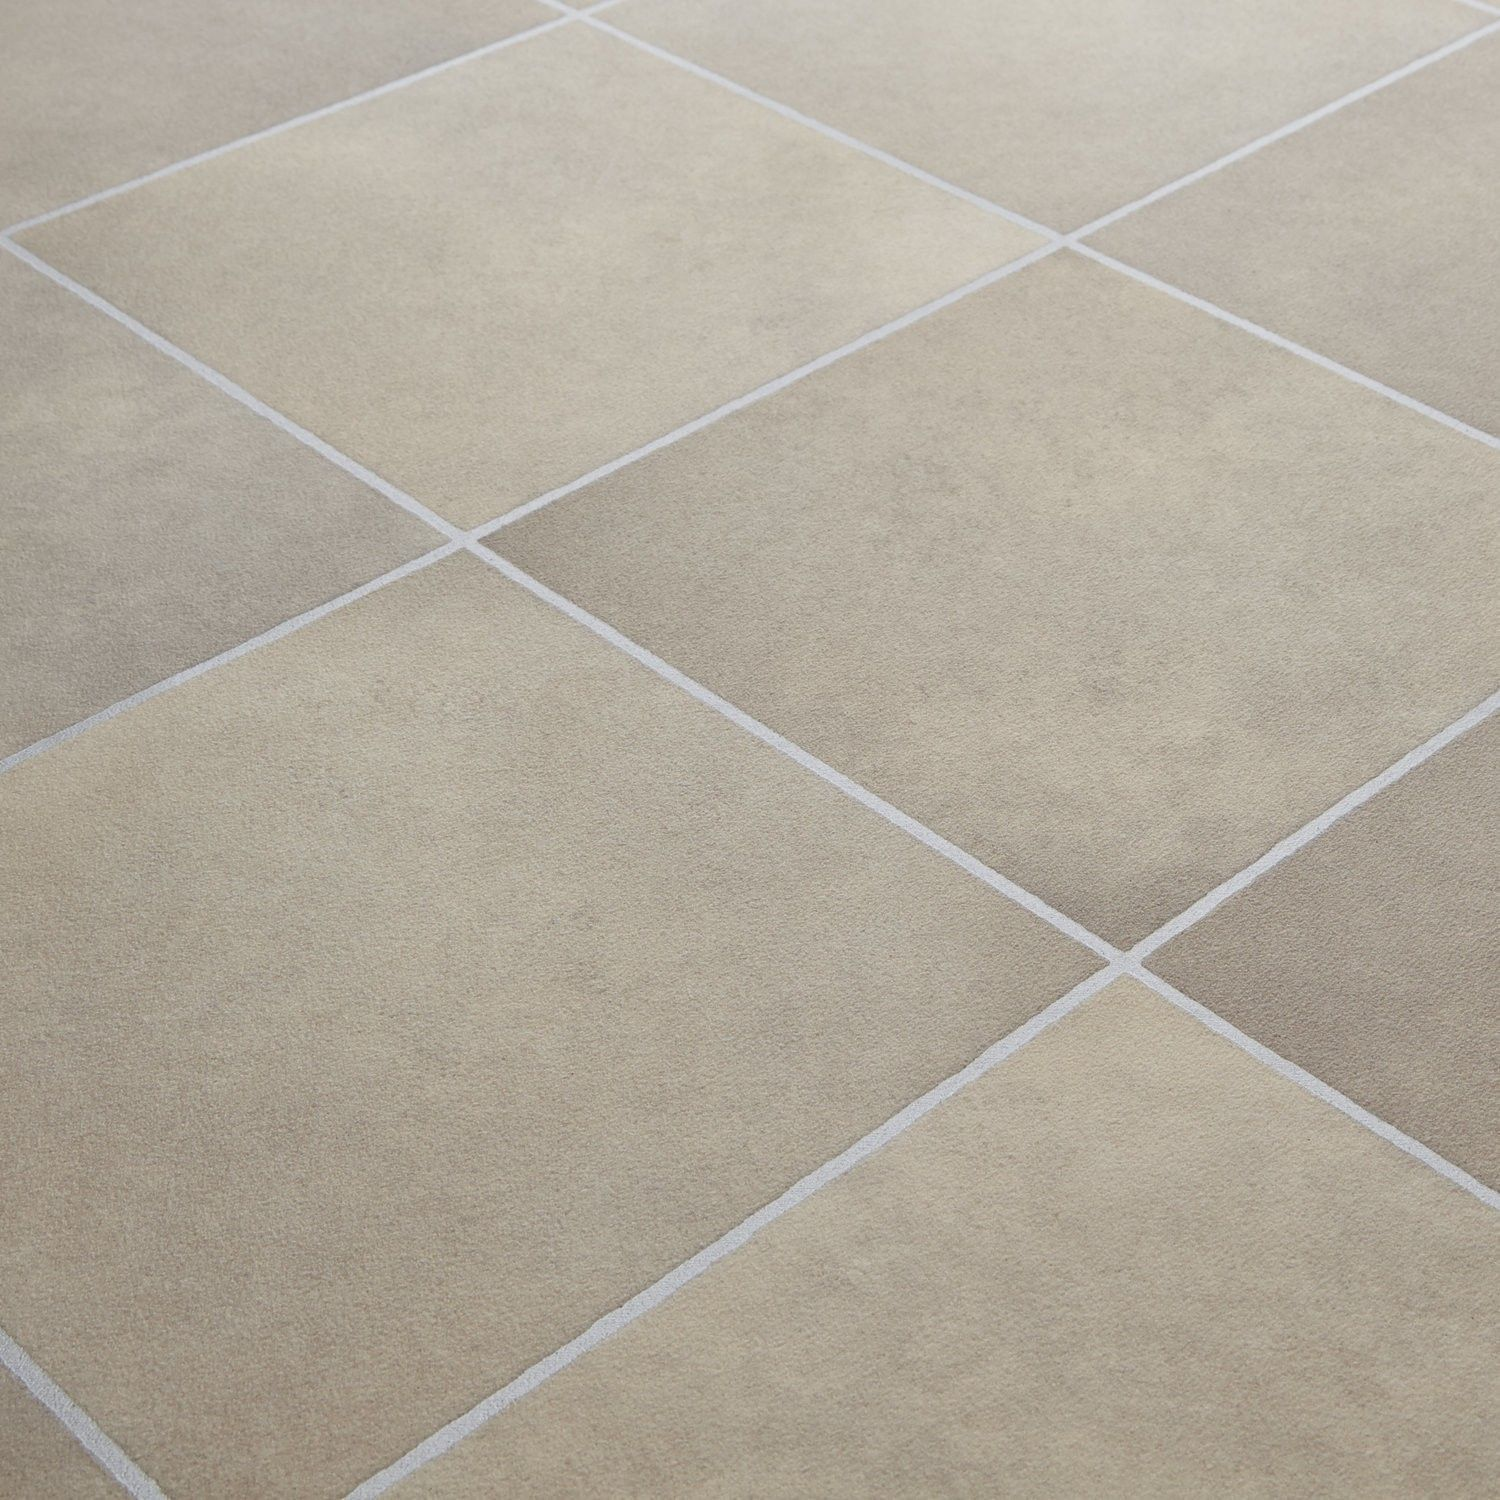 Kitchen Floor Vinyl Tiles 1199 Rhino Classic Cottage Beige Grey Stone Tile Effect Vinyl